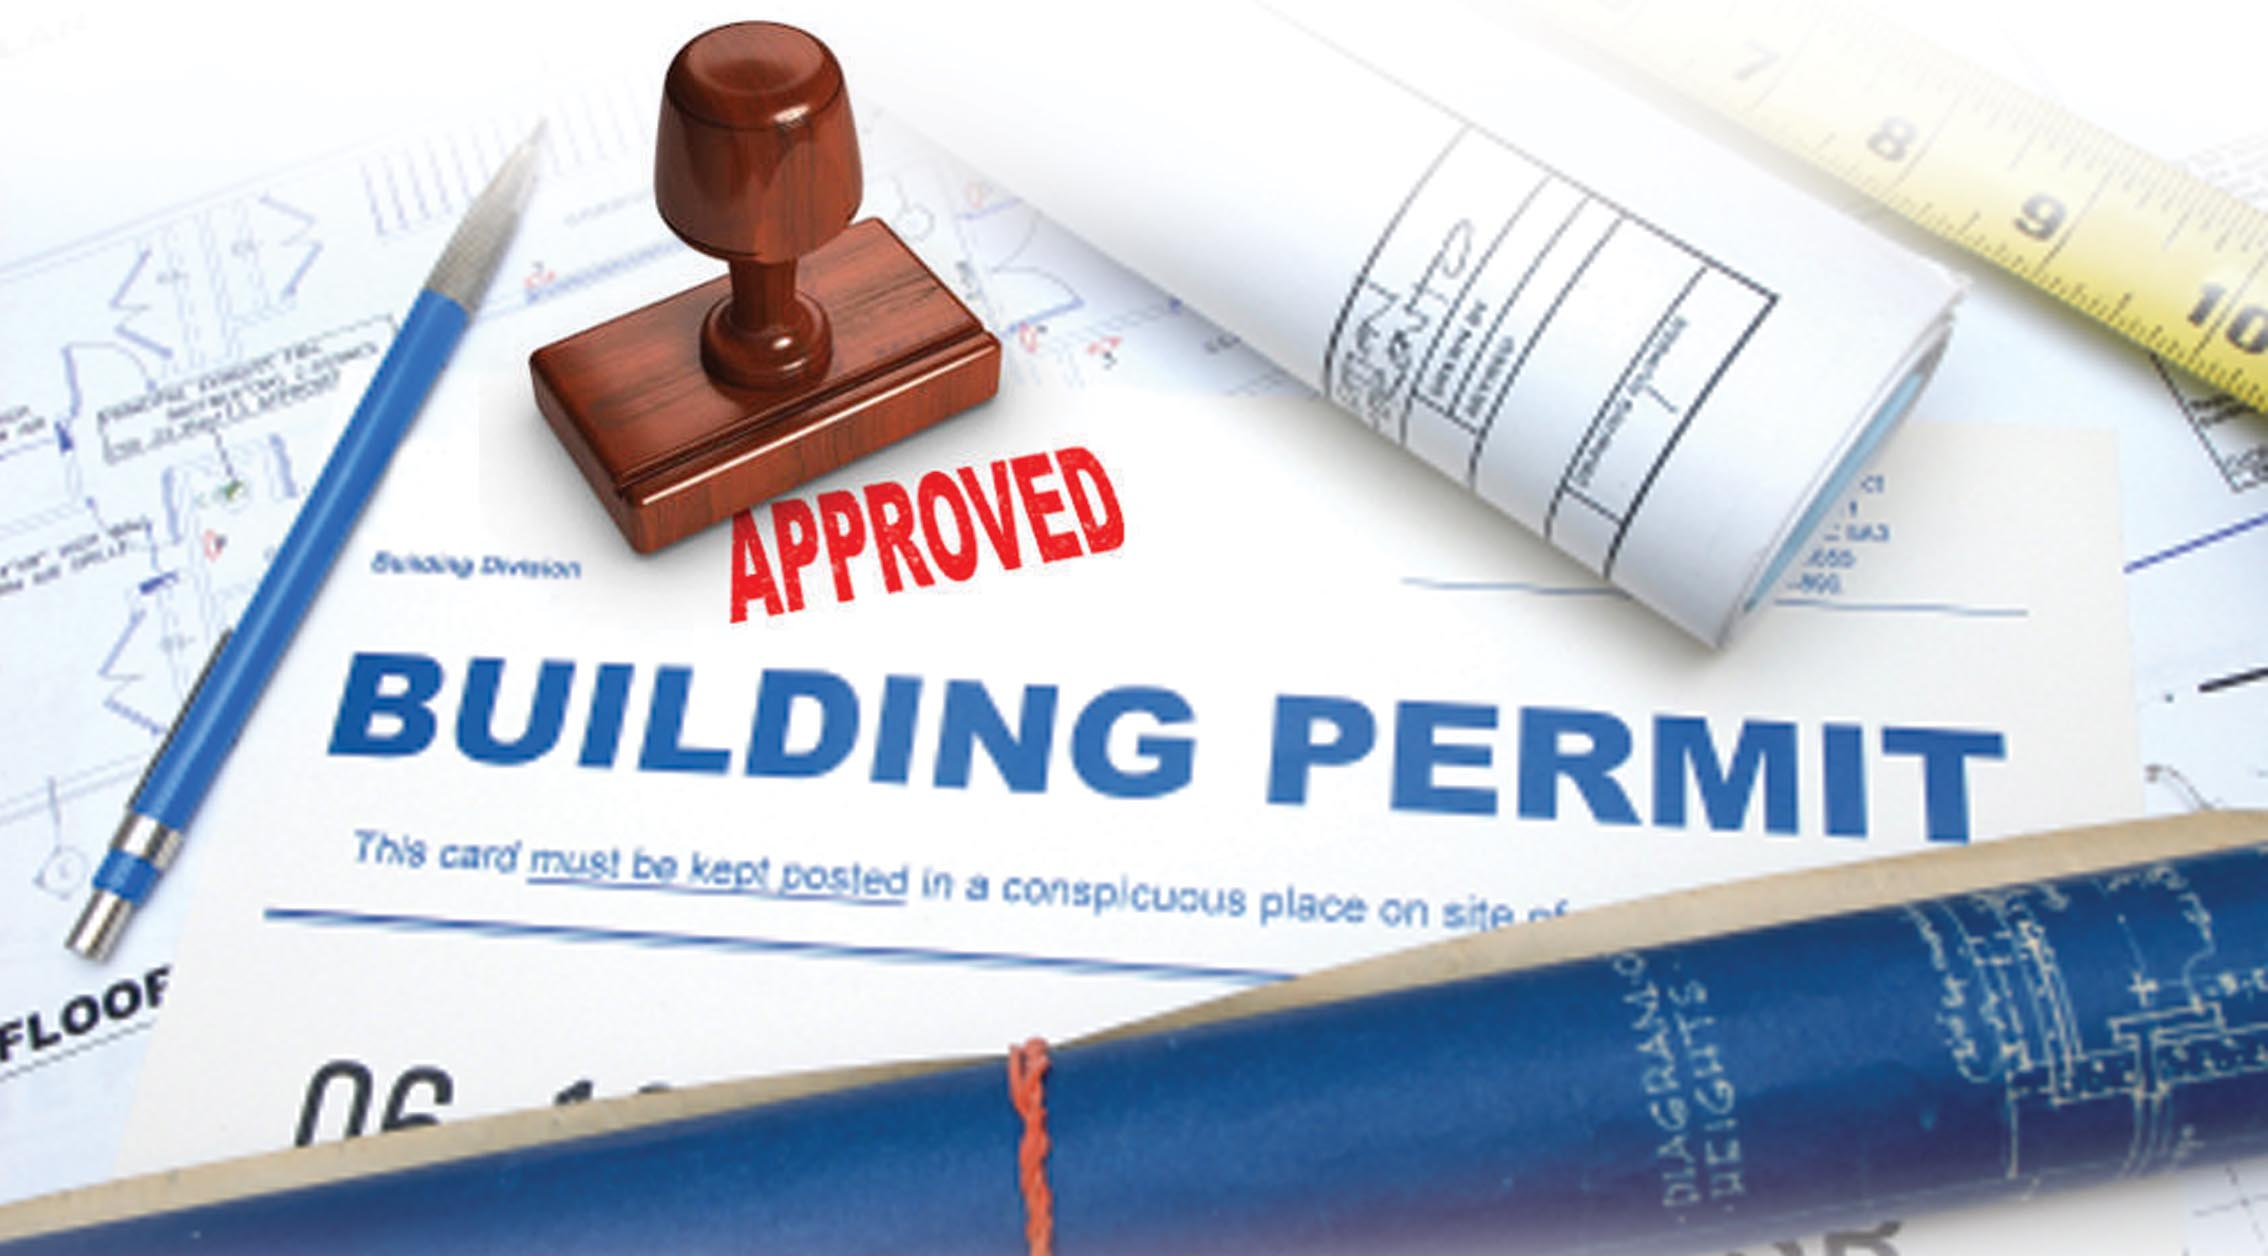 Building Permit photo